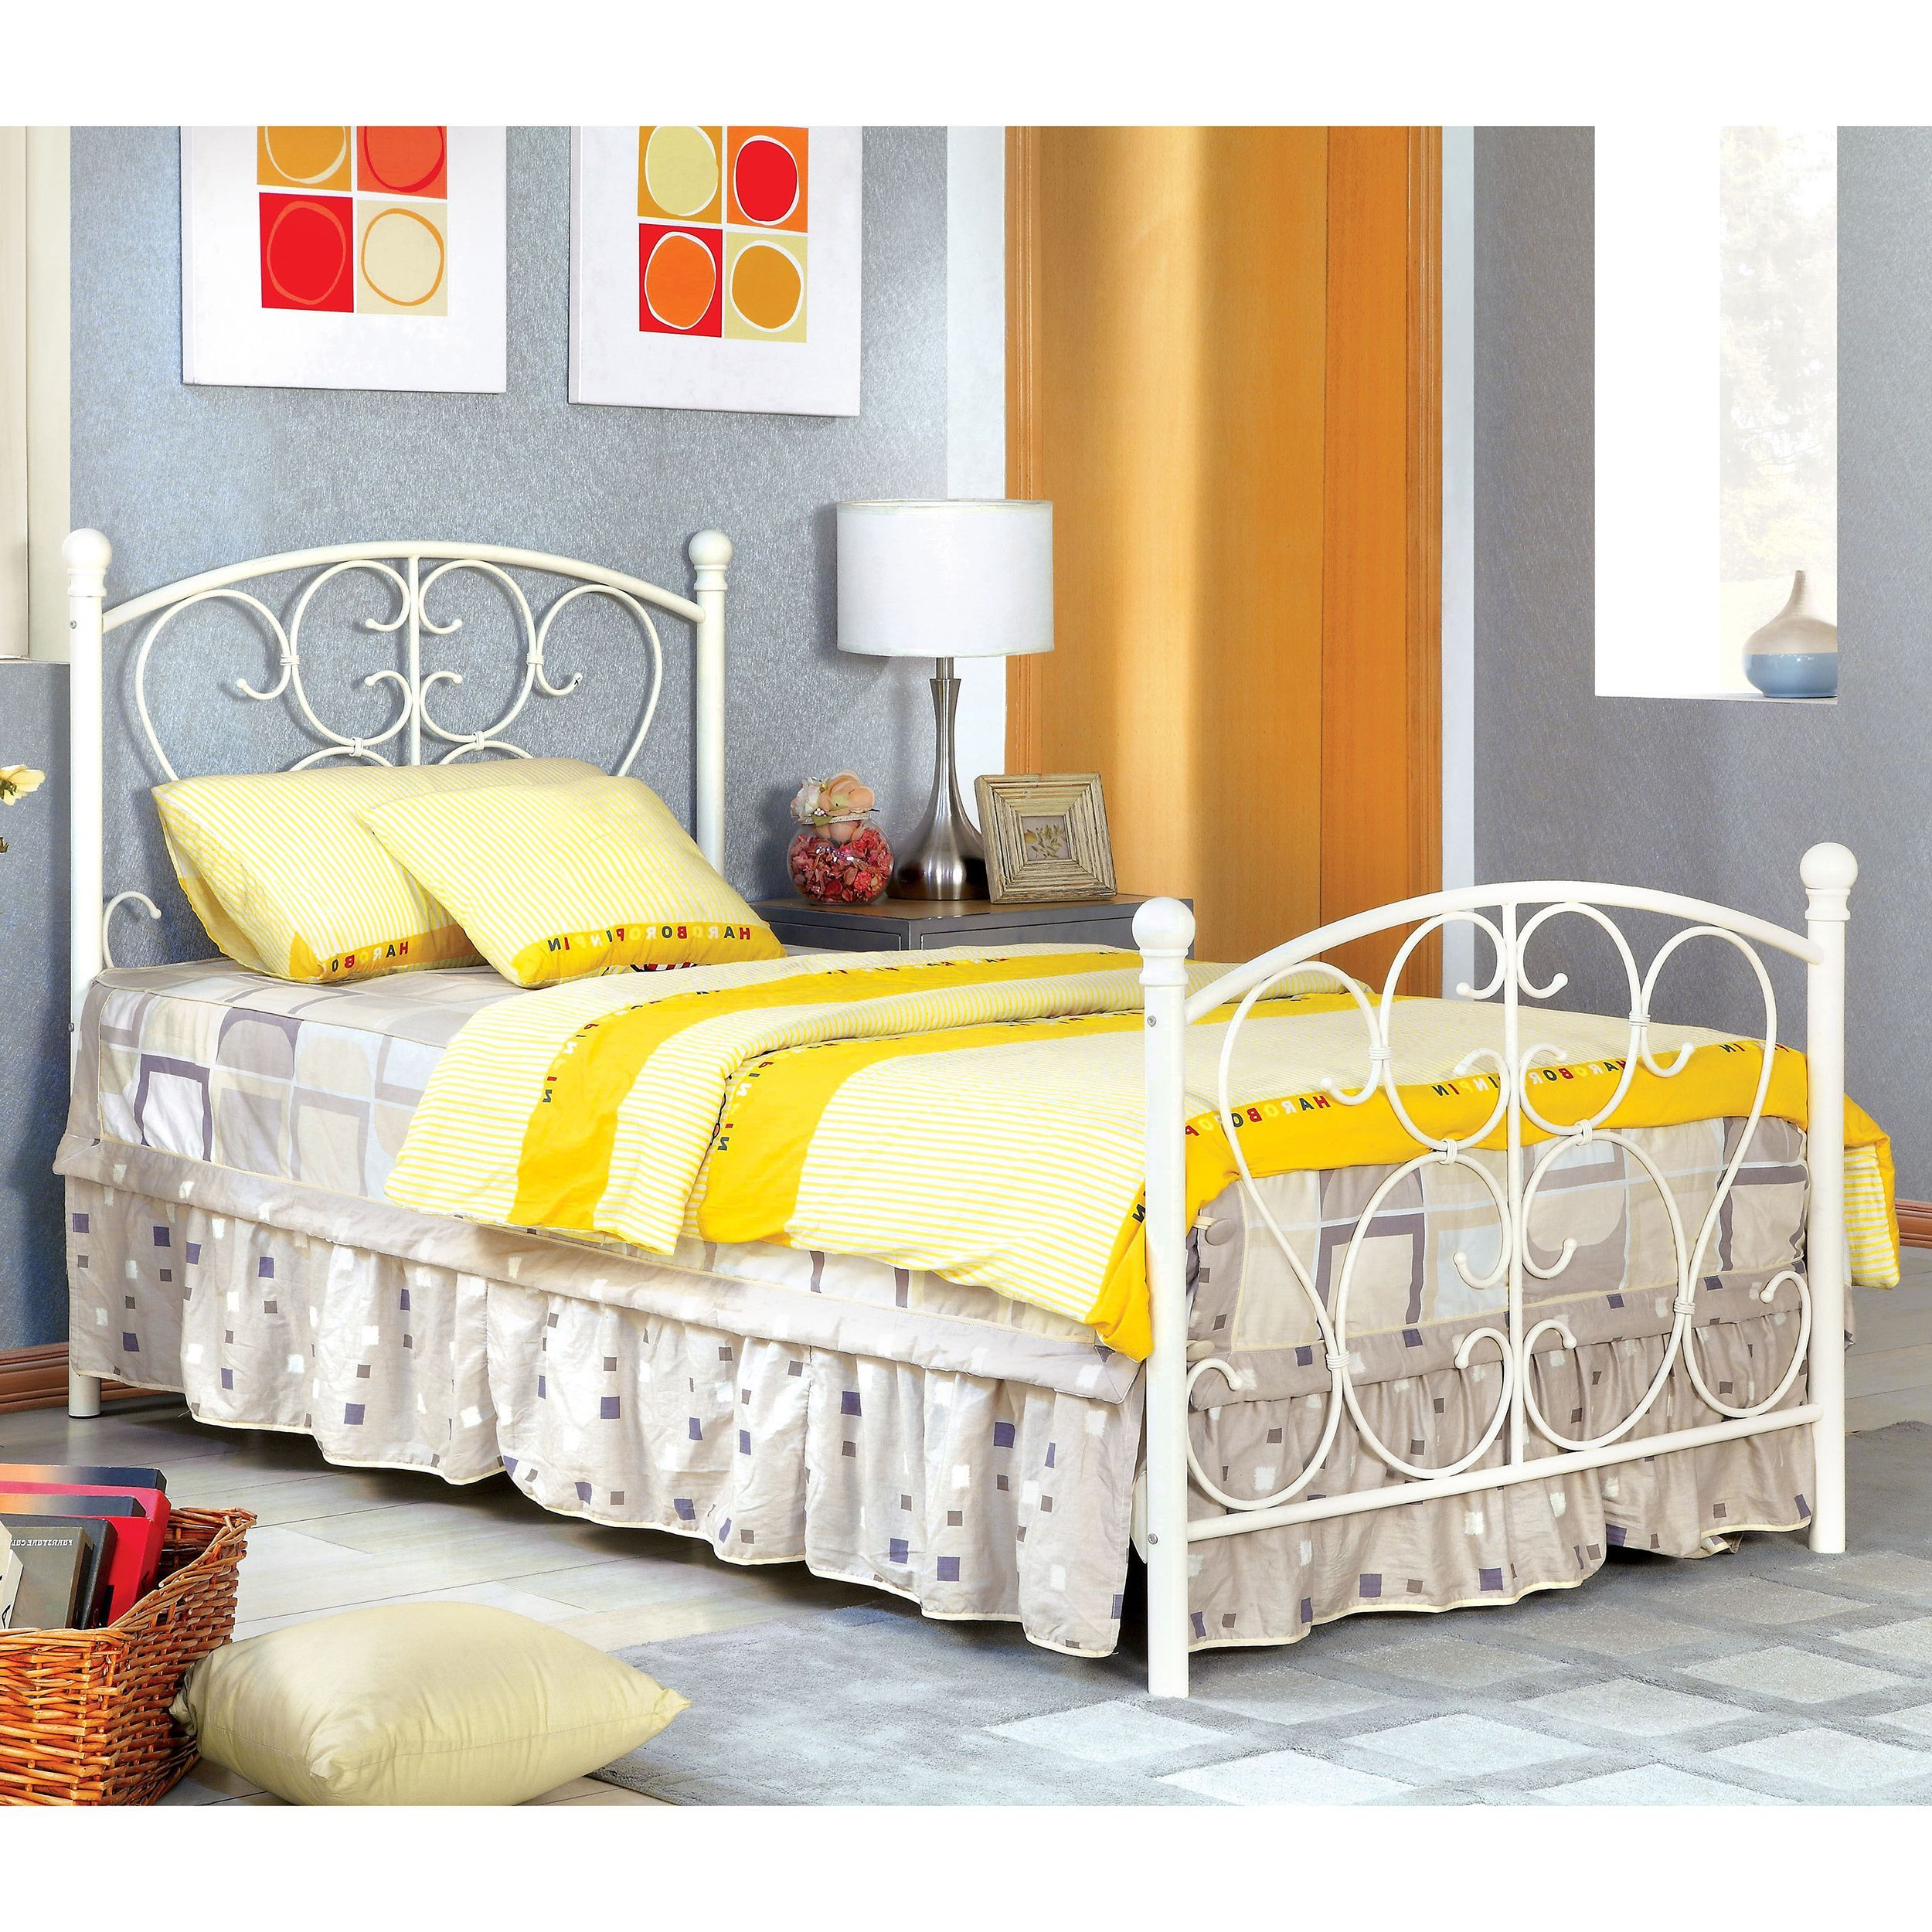 Charmingly youthful, this princess style twin bed offers swirls of ...